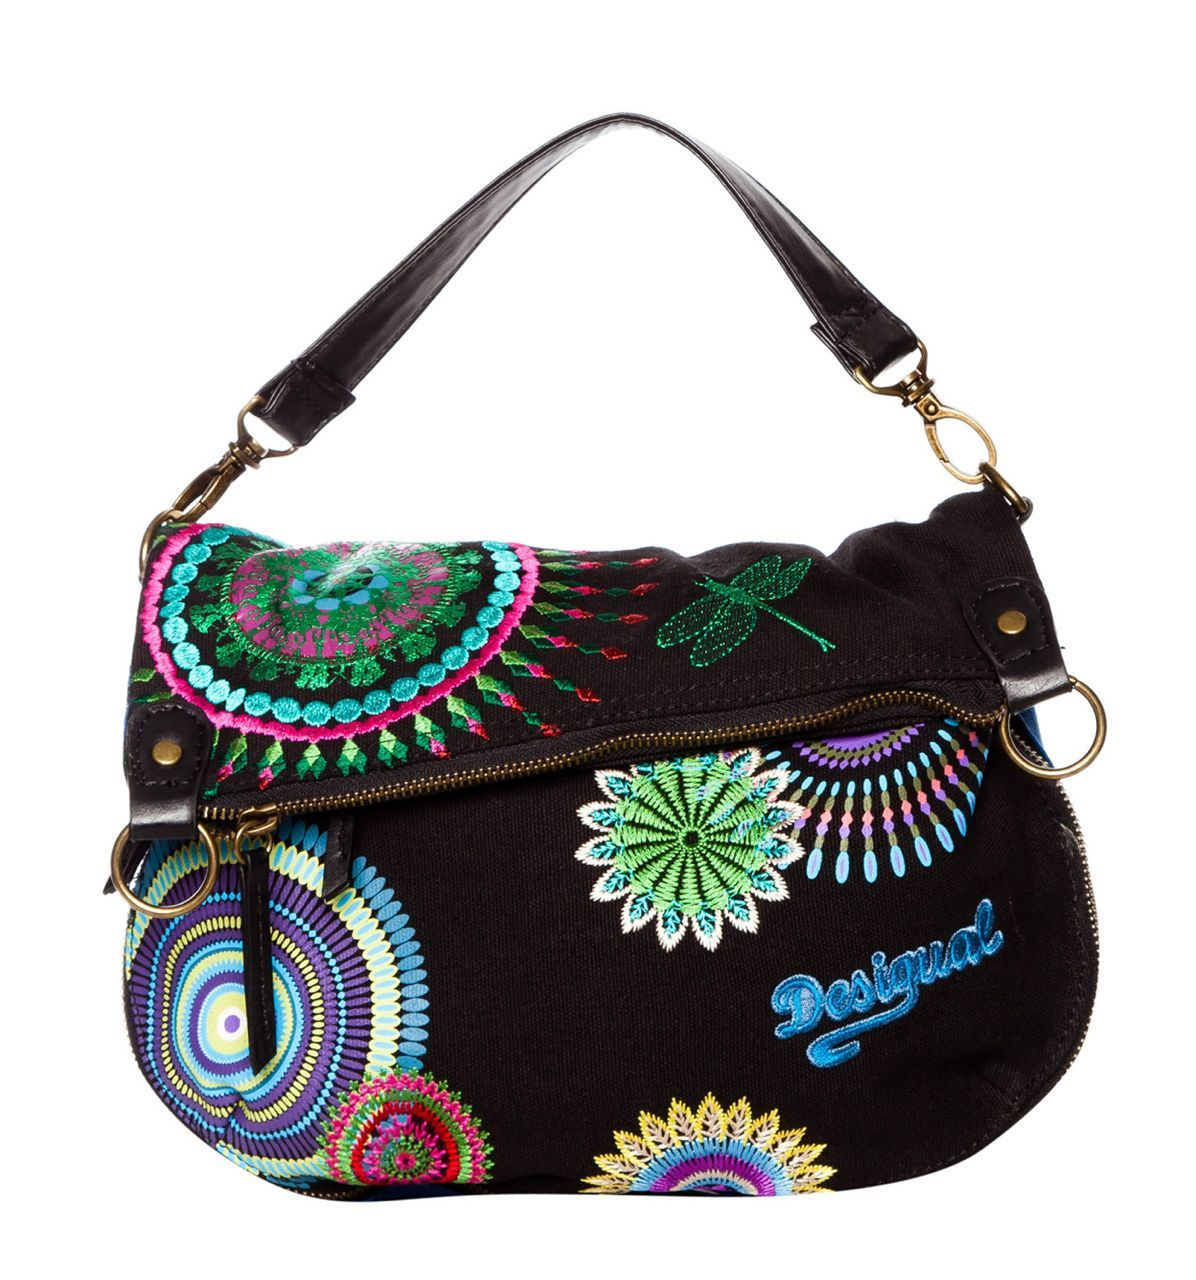 Desigual Bags and Accessories Online | Canada